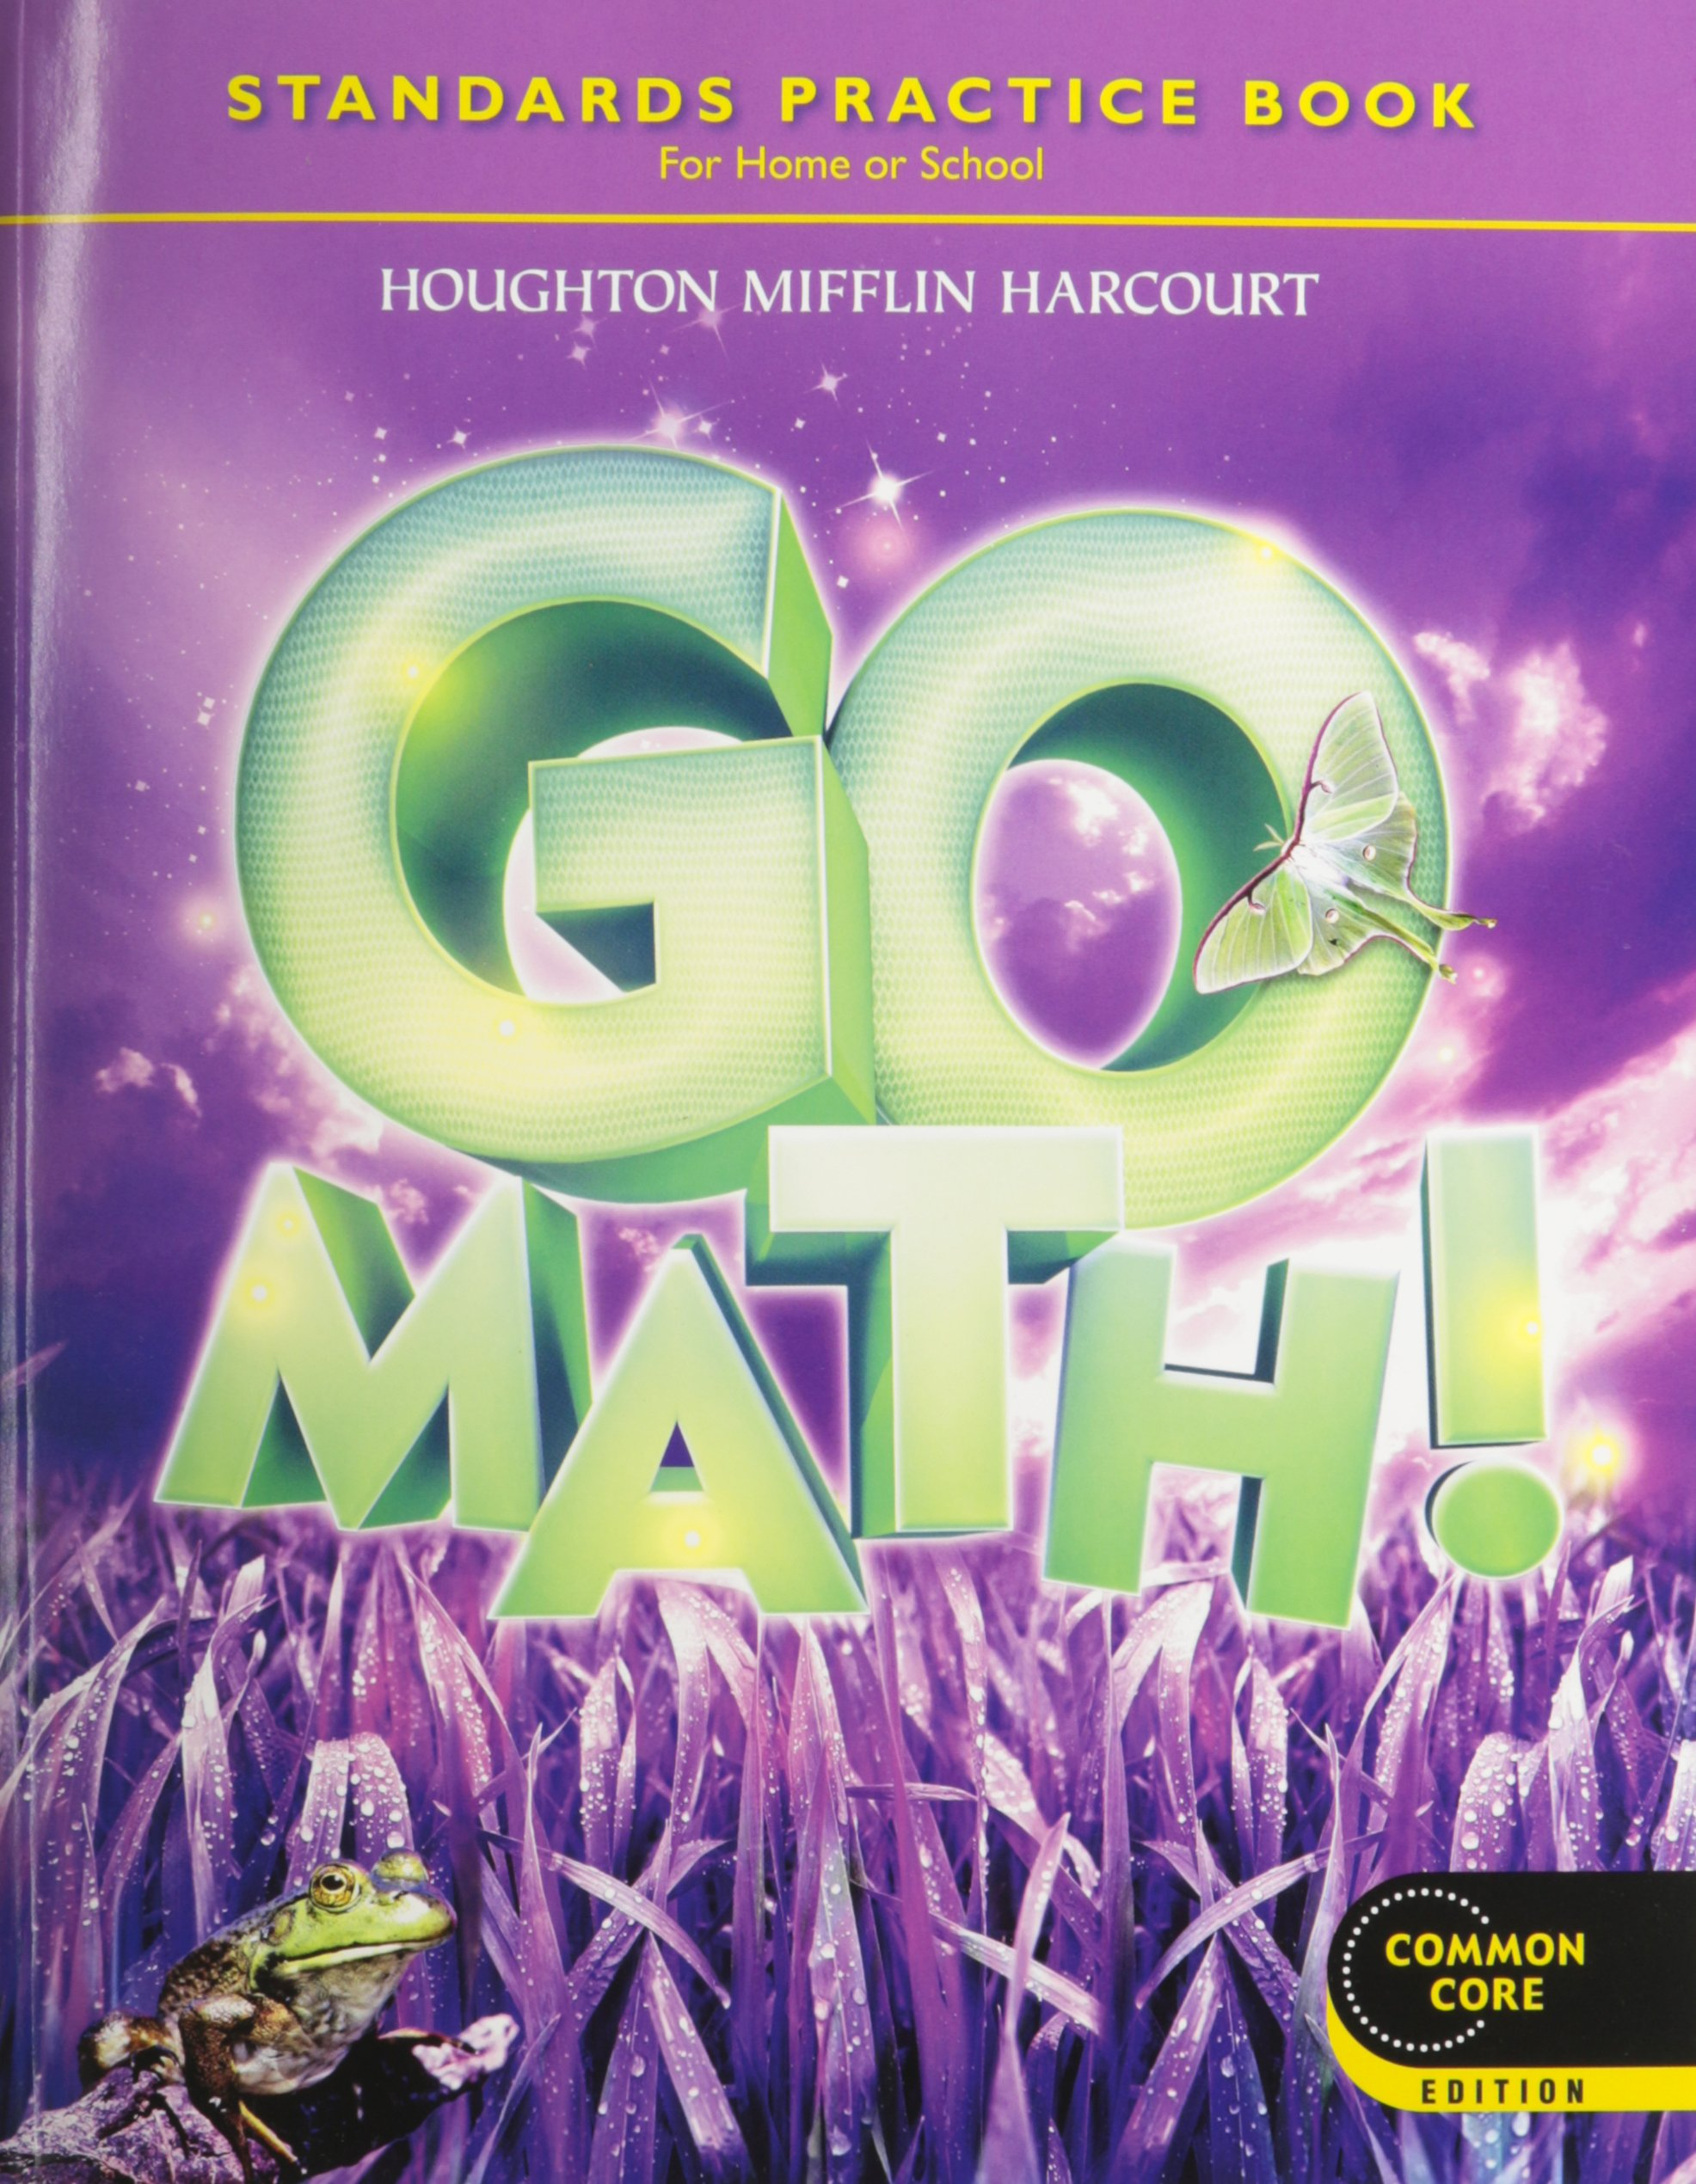 worksheet Houghton Mifflin Harcourt Math Worksheets go math student practice book for home or school grade 3 houghton mifflin harcourt 9780547588100 books amazon ca